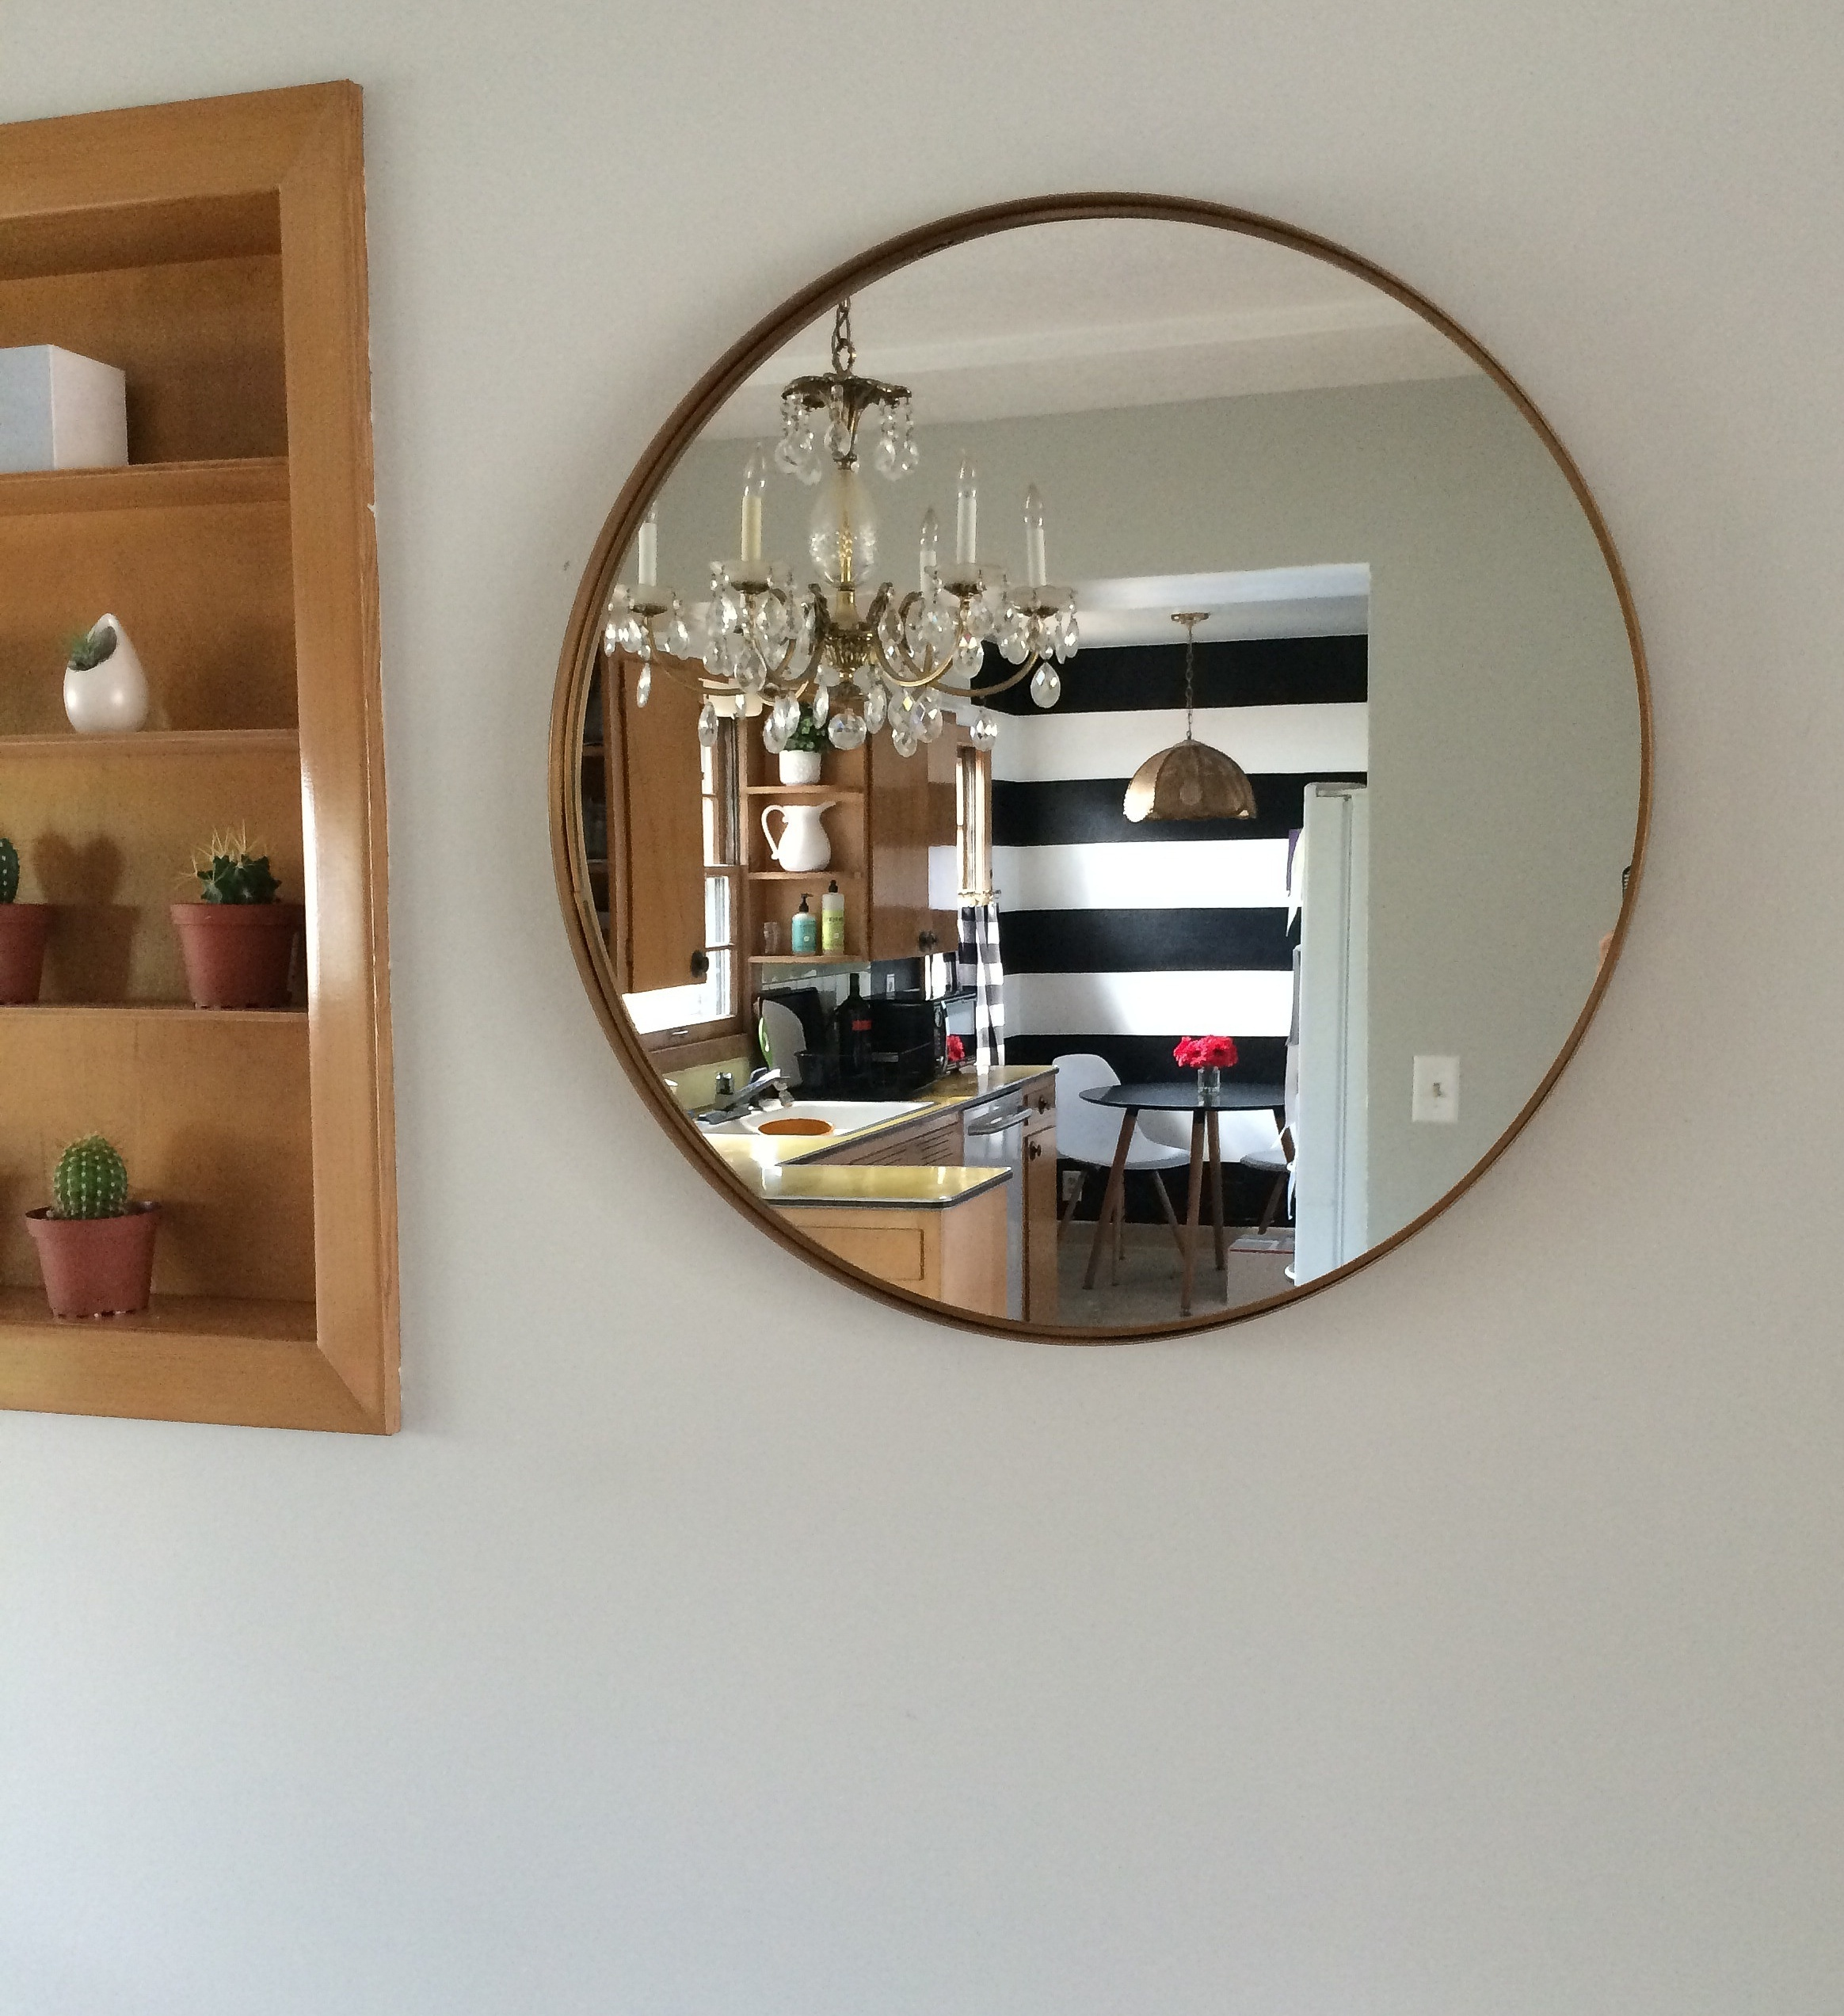 i fancy that ikea mirror makeover whyallthefuss. Black Bedroom Furniture Sets. Home Design Ideas